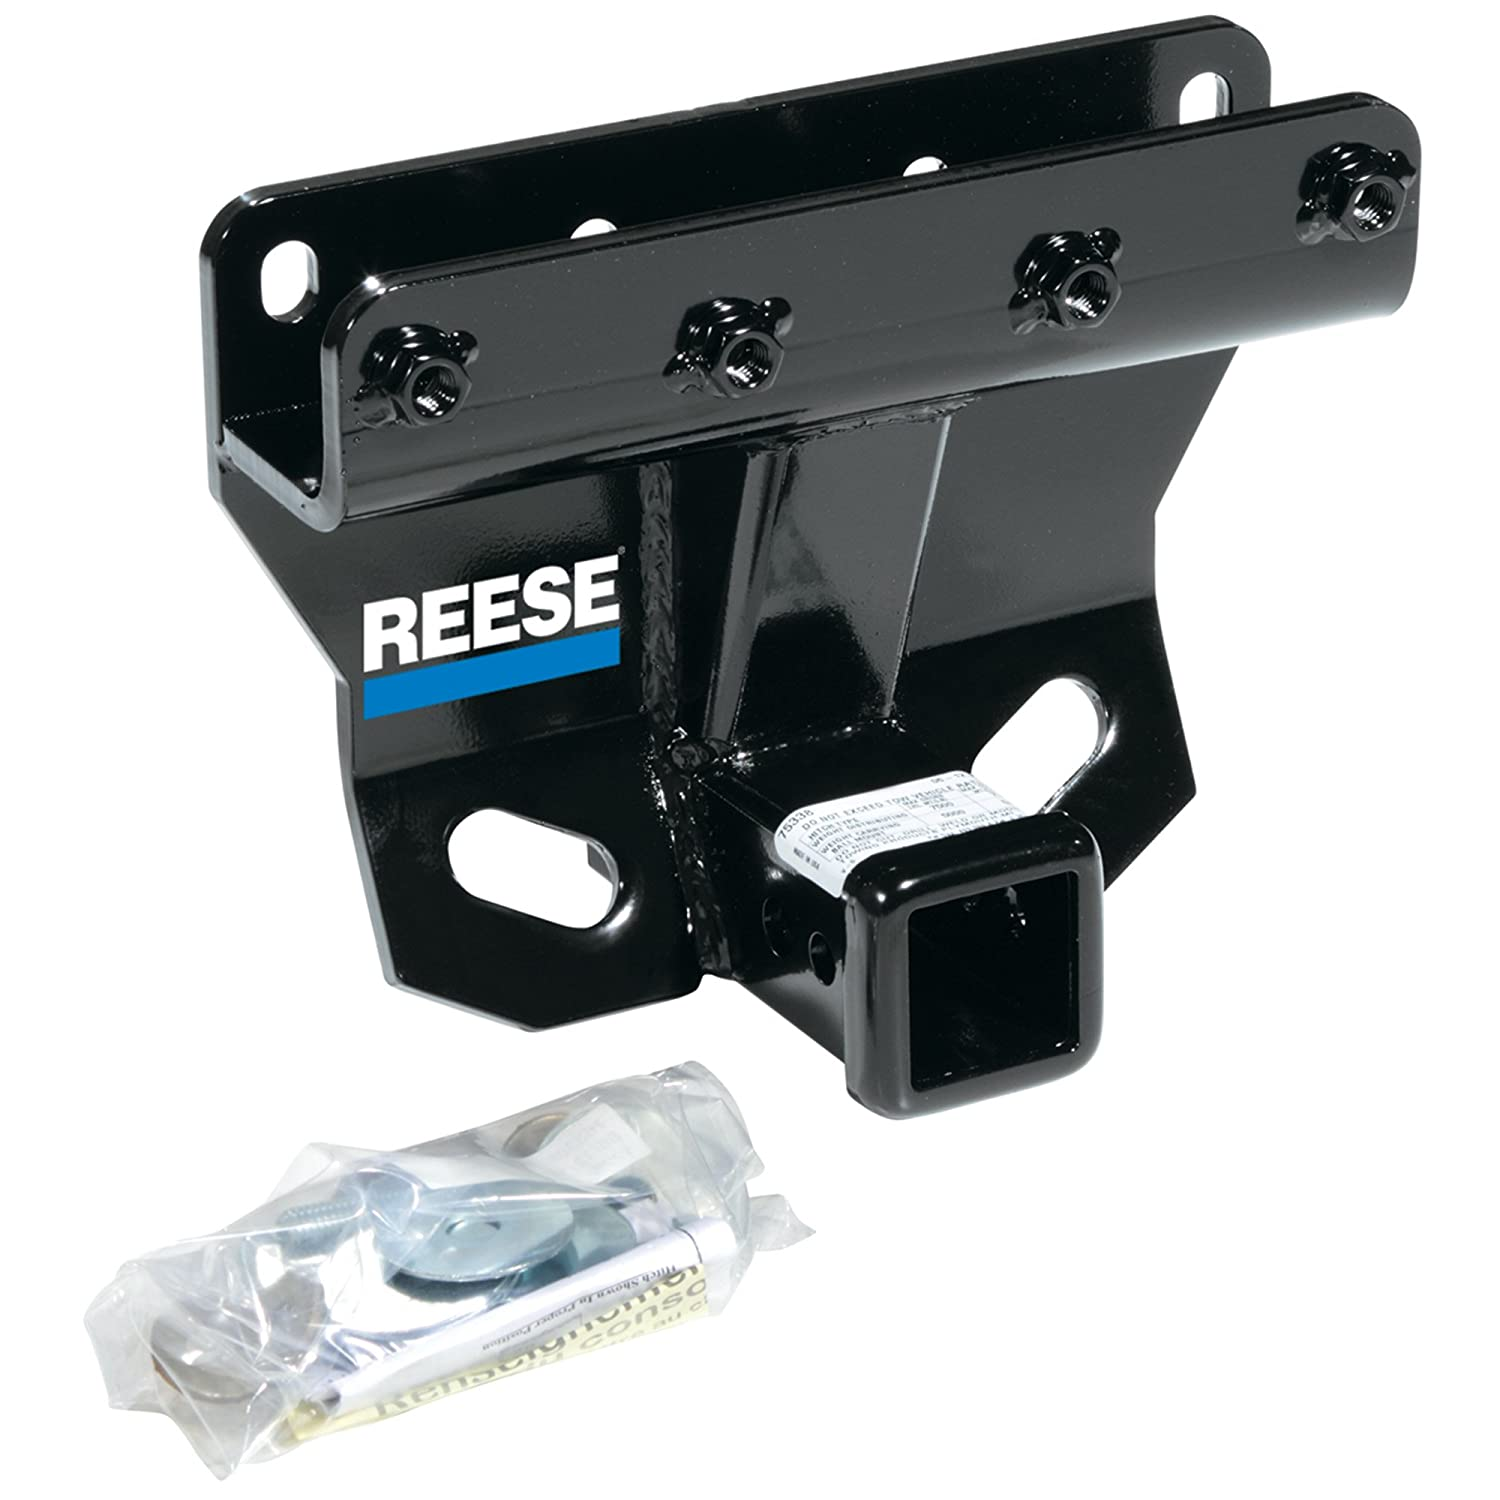 includes Hitch Plug Cover Reese Towpower Reese 44748 Class III-IV Custom-Fit Hitch with 2 Square Receiver opening